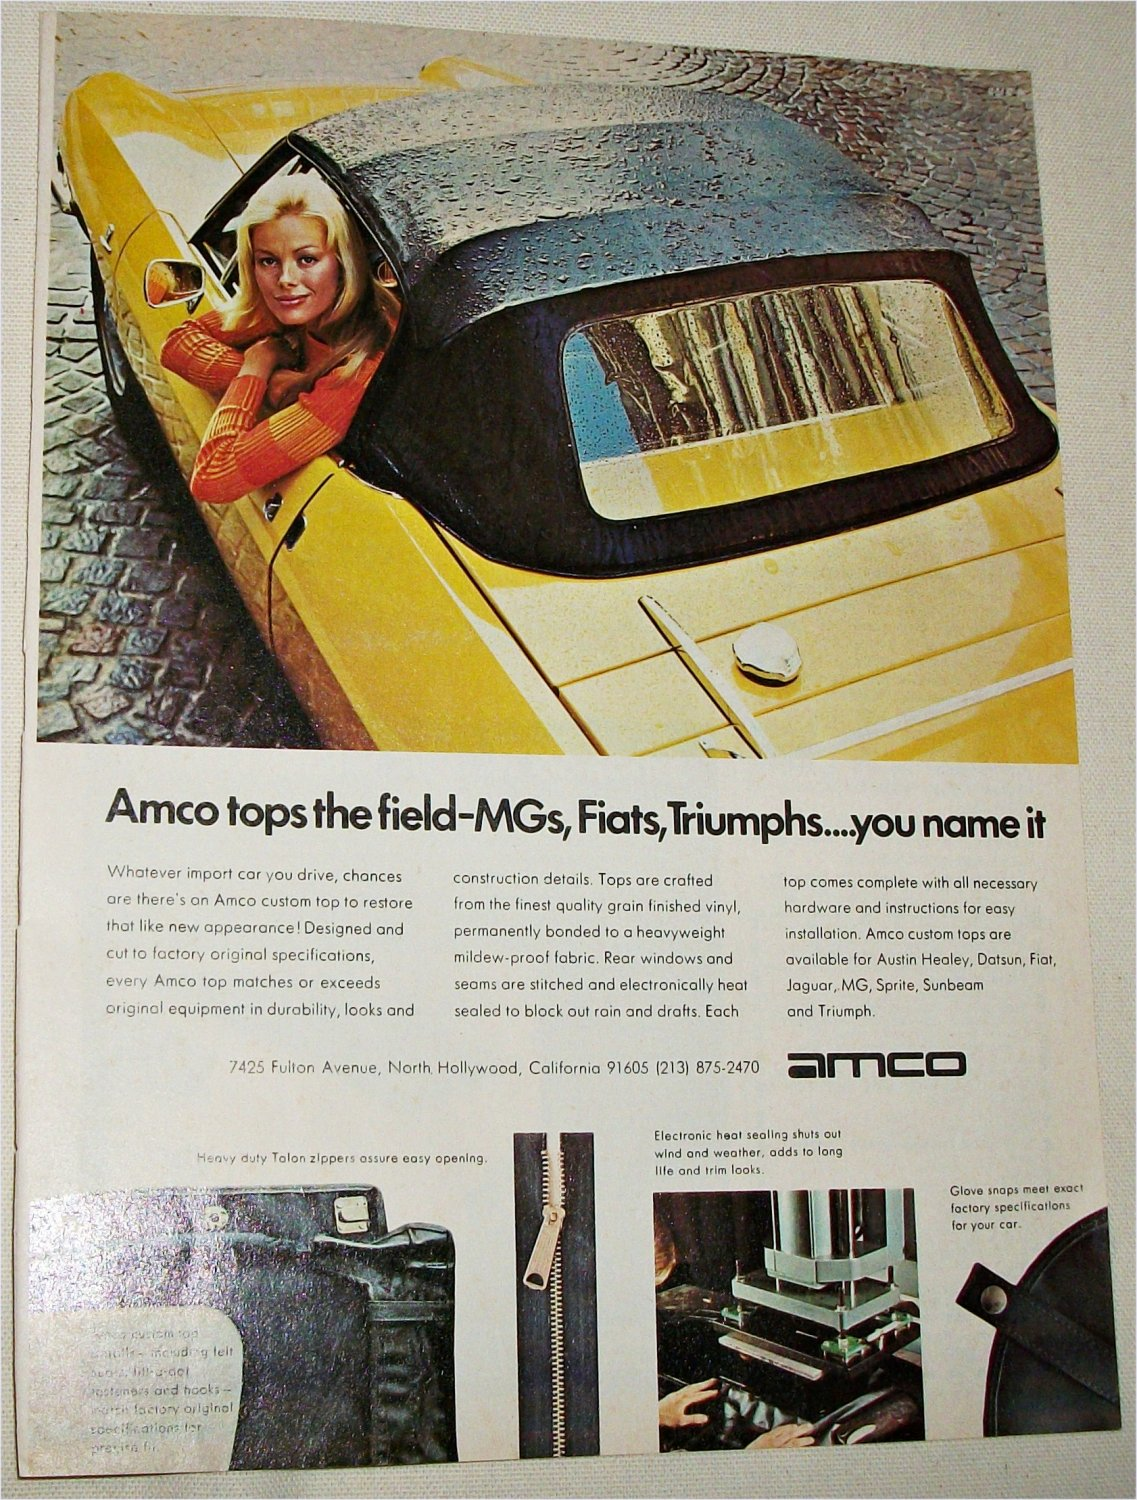 1979 Amco Tops ad